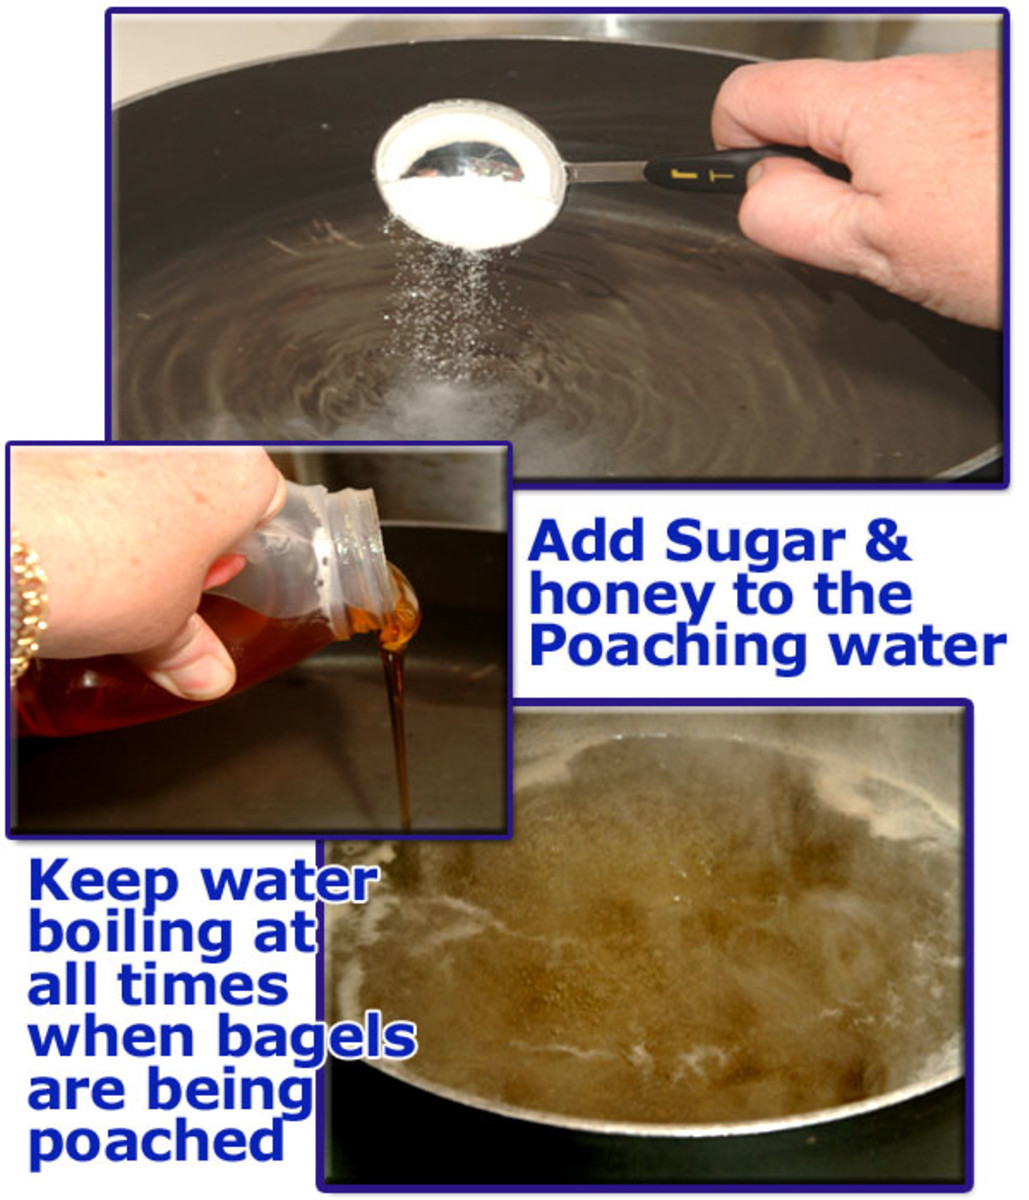 This is the secret bakers don't want you to know! By adding sugar and honey to the poaching liquid for homemade Bagels, you create a crisper and slightly sweet crust during the baking process.